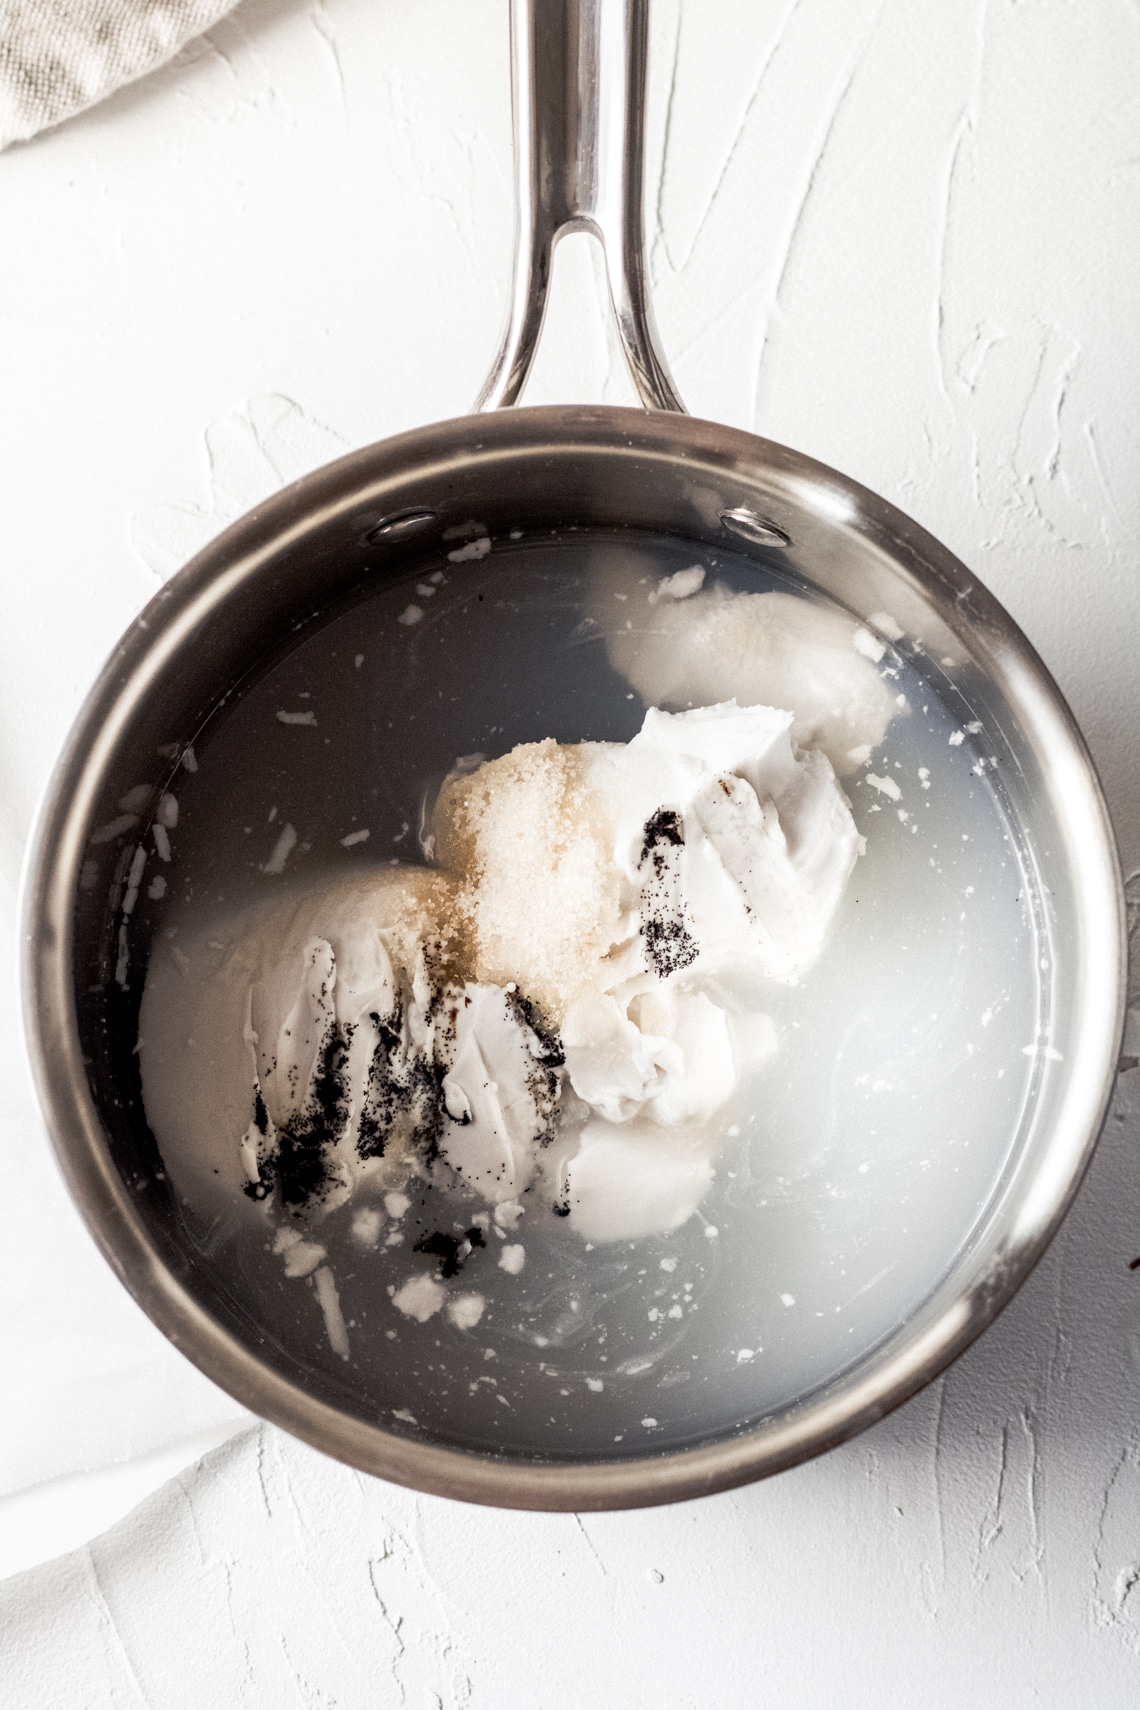 ingredients for vanilla coffee creamer in a saucepan